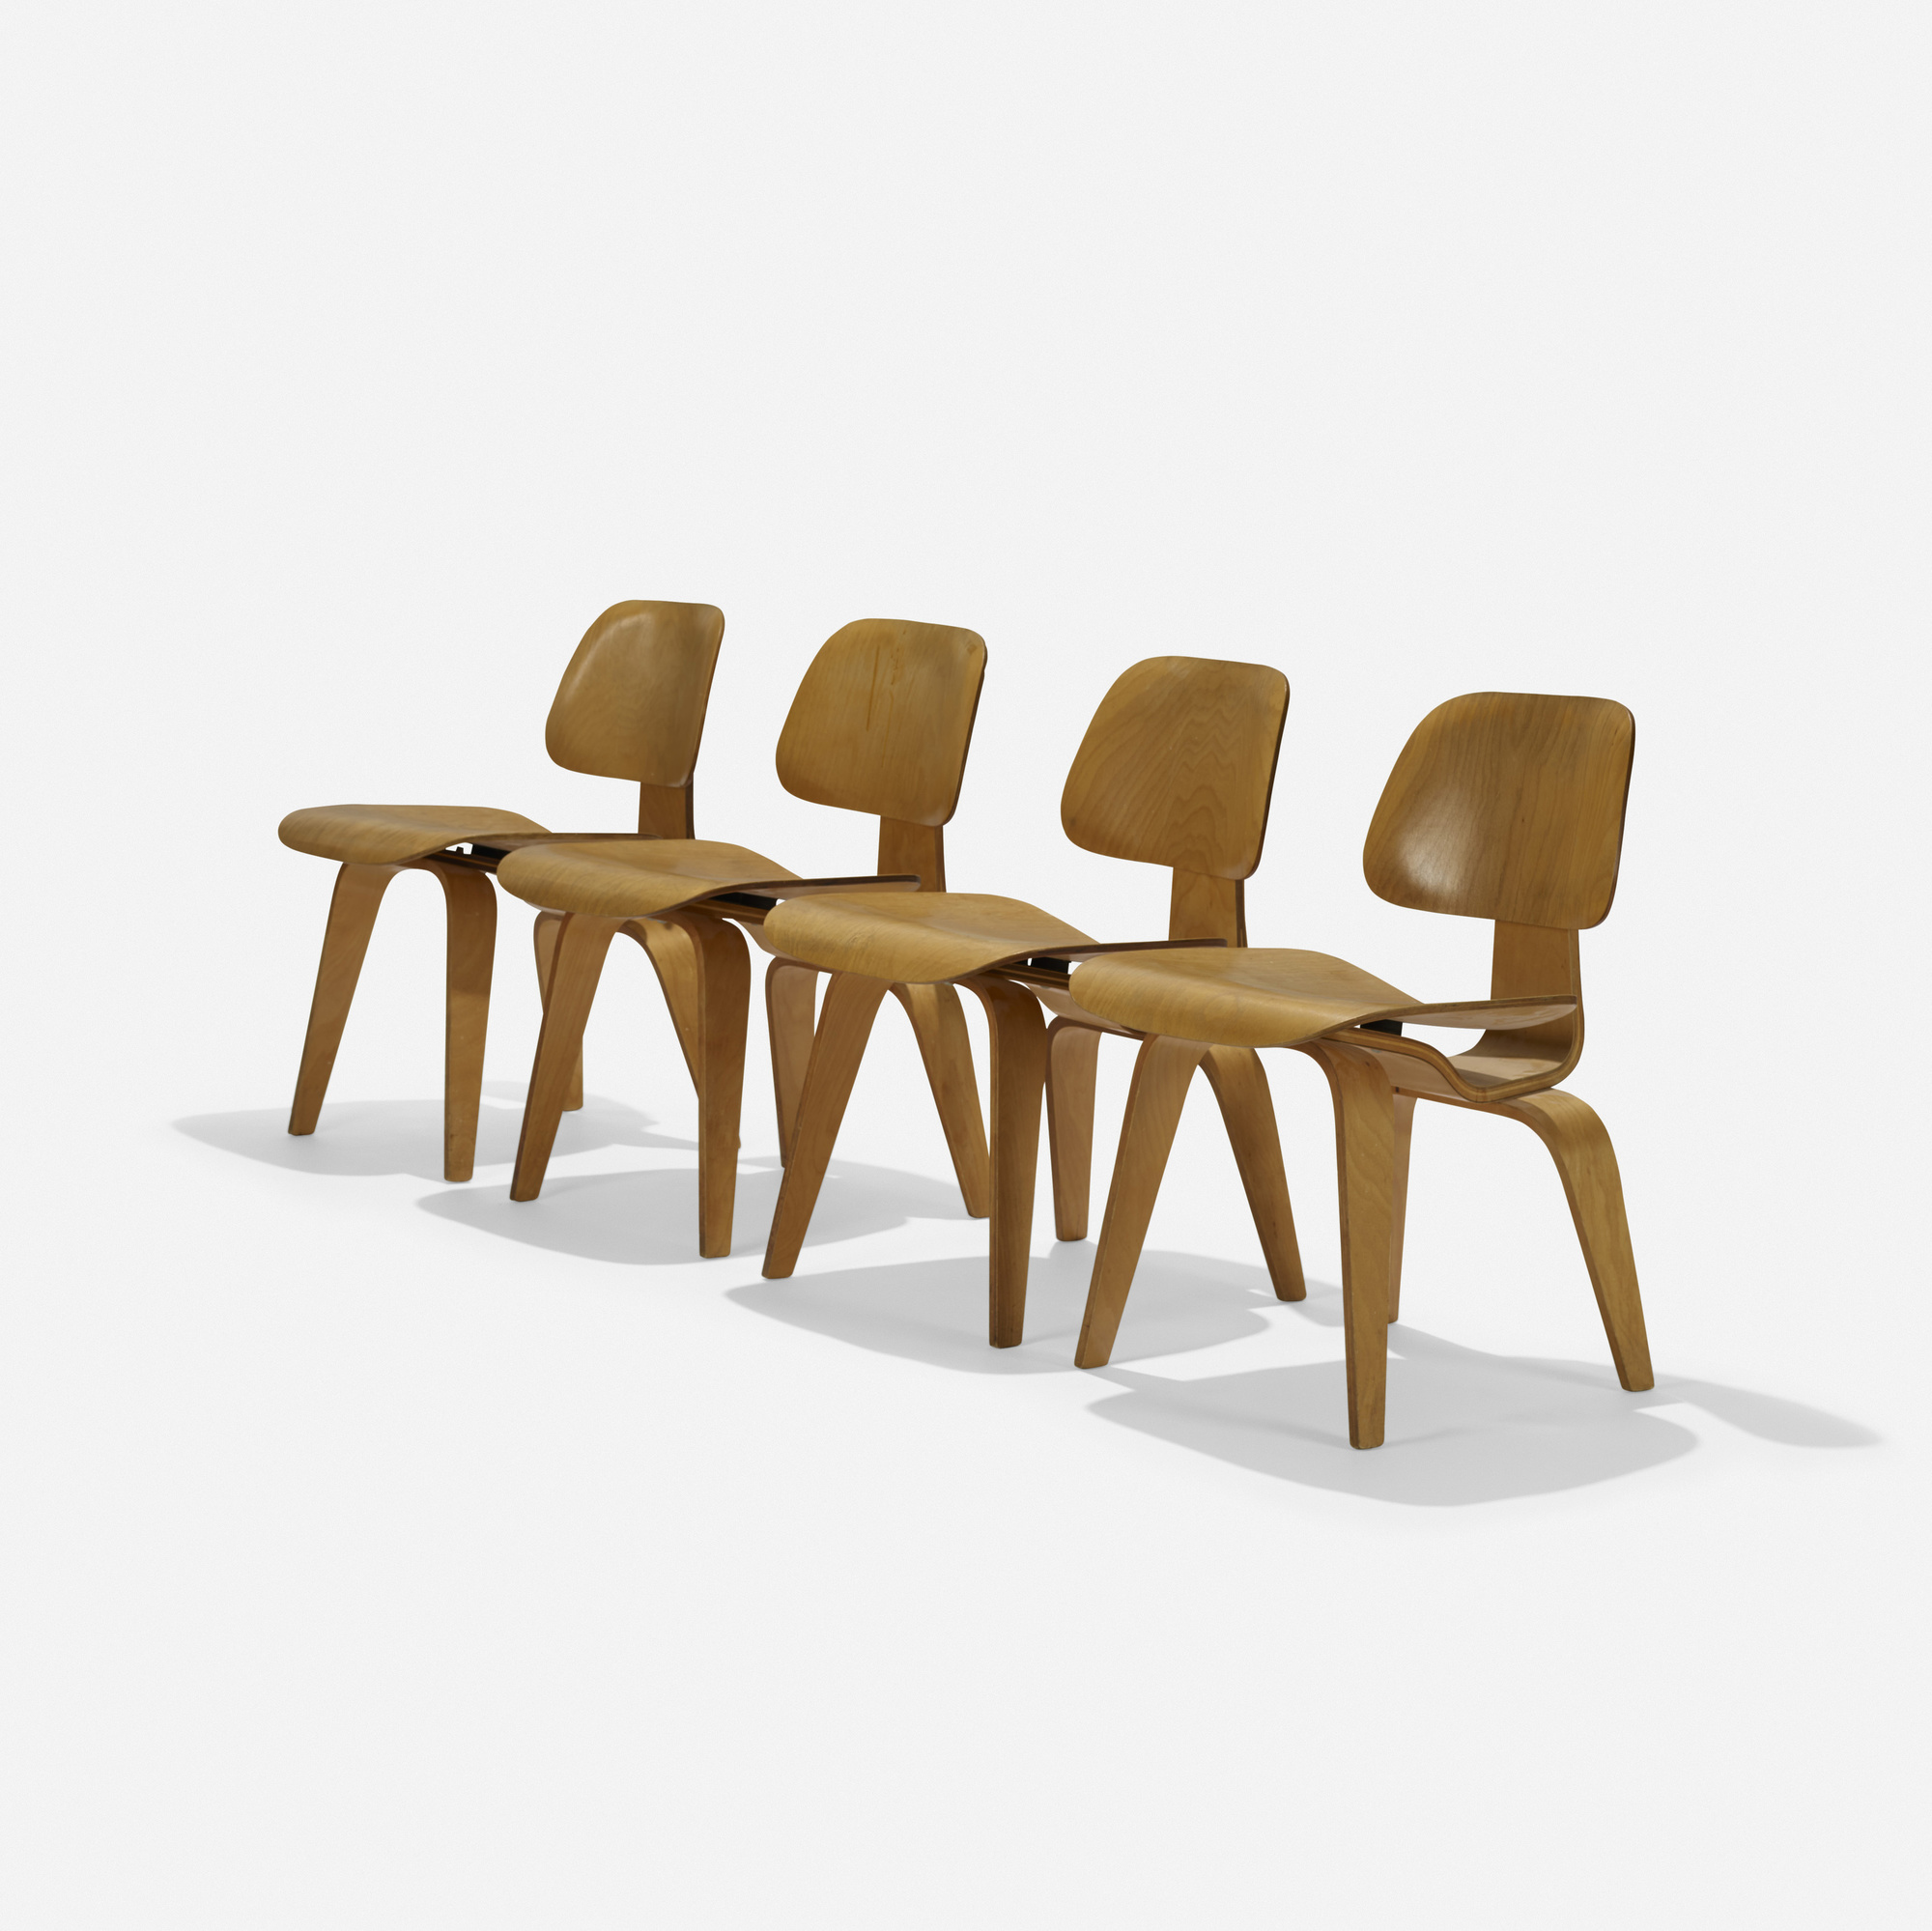 145: Charles and Ray Eames / DCWs, set of four (1 of 4)